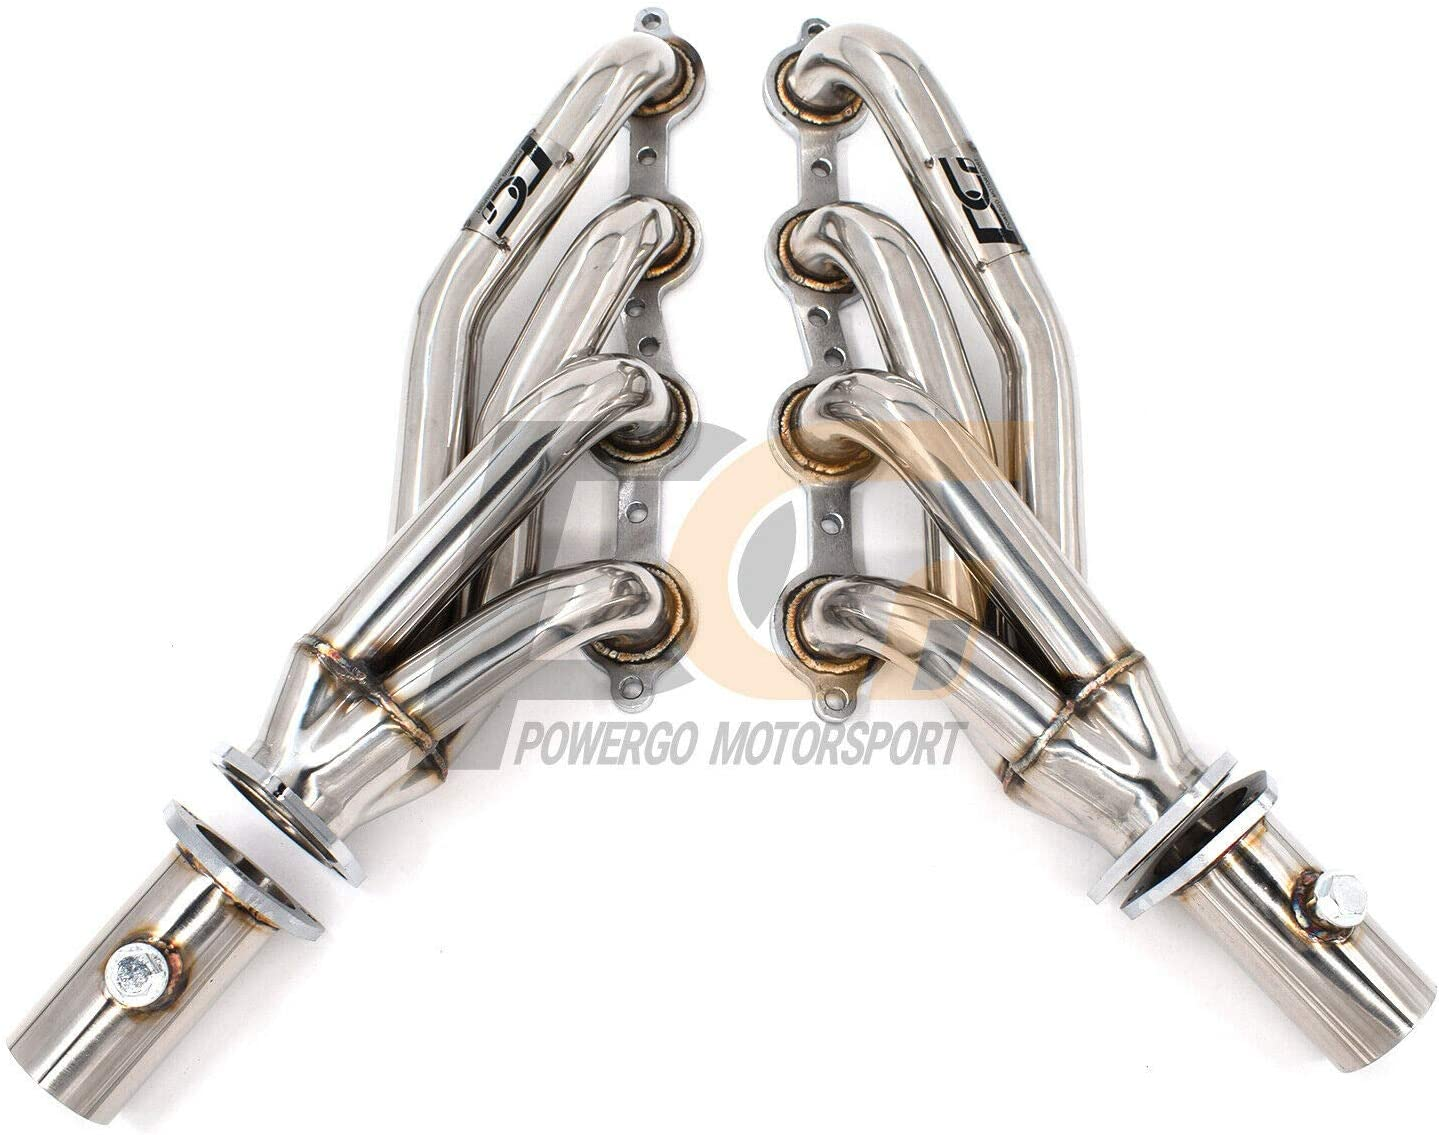 LS Motor Swap Headers For Chevrolet Great interest Camino Chevelle A-Body Mo New York Mall El